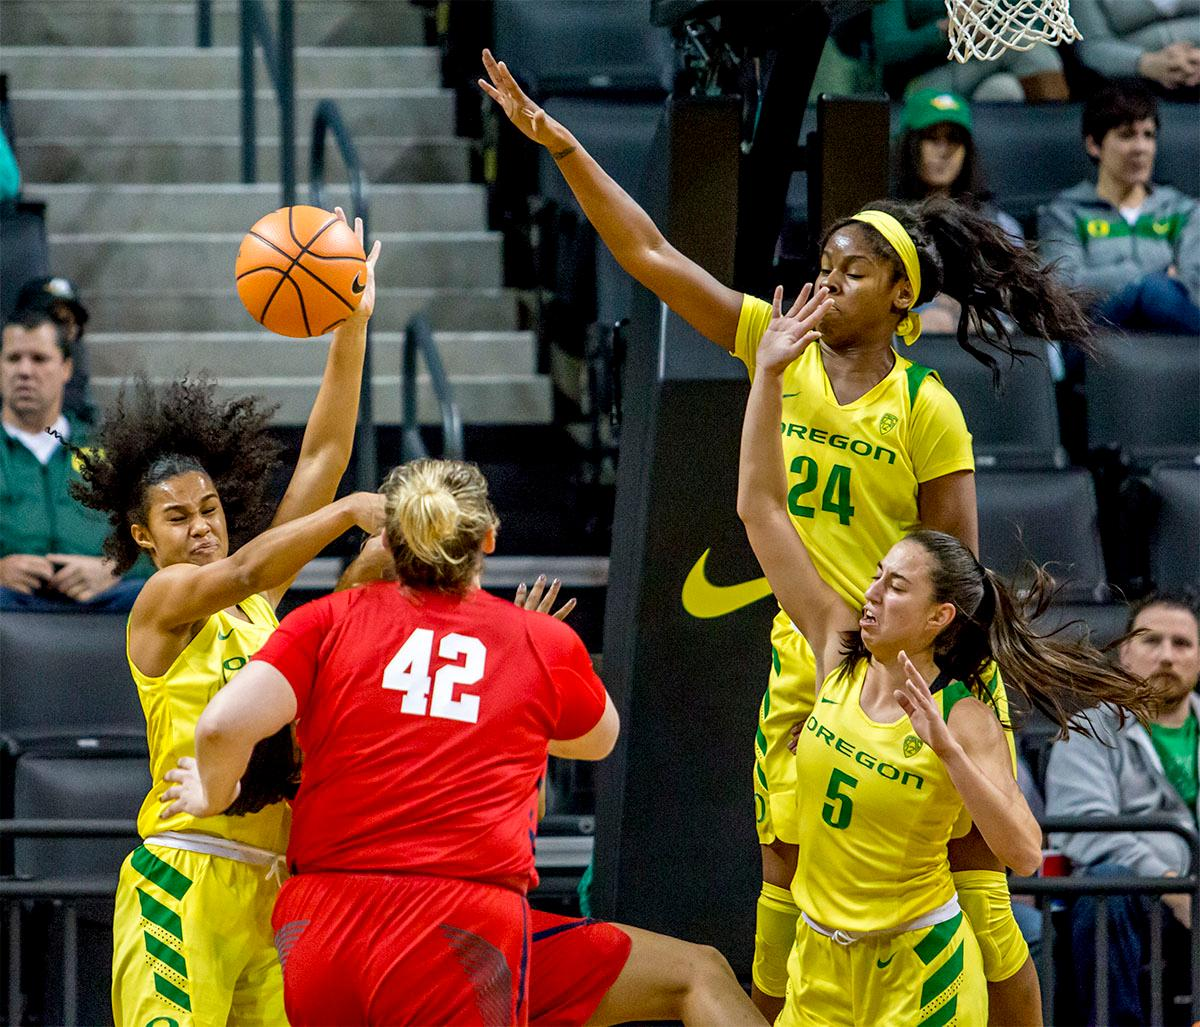 The Duck's jump in to catch the rebound against the Rebels. The Duck's Sabrina Ionescu (#20) is introduced at the start of the game against the Ole Miss Rebels. The Oregon Ducks womens basketball team defeated the Ole Miss Rebels 90-46 on Sunday at Matthew Knight Arena. Sabrina Ionescu tied the NCAA record for triple-doubles, finishing the game with 21 points, 14 assists, and 11 rebounds. Ruthy Hebard added 16 points, Satou Sabally added 12, and both Lexi Bando and Maite Cazorla scored 10 each. The Ducks will next face off against Texas A&M on Thursday Dec. 21 and Hawaii on Friday Dec. 22 in Las Vegas for Duel in the Desert before the start of Pac-12 games. Photo by August Frank, Oregon News Lab